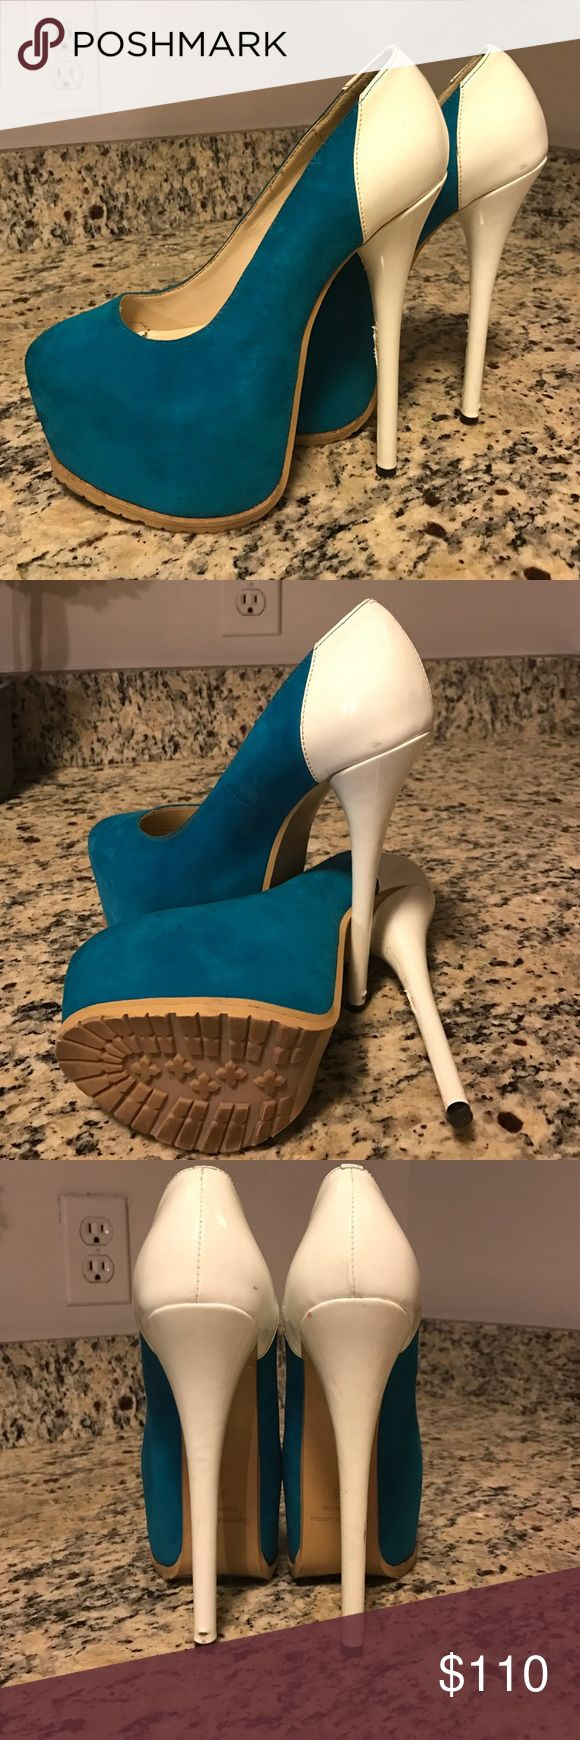 Gianmarco Lorenzi Platform Stiletto Heels Gianmarco Lorenzi Platform Stiletto Heels. Made in Italy. Teal Suede/White Patent Leather *these are not CLoubs-no Gianmarco category*  worn only once-great condition Christian Louboutin Shoes Platforms